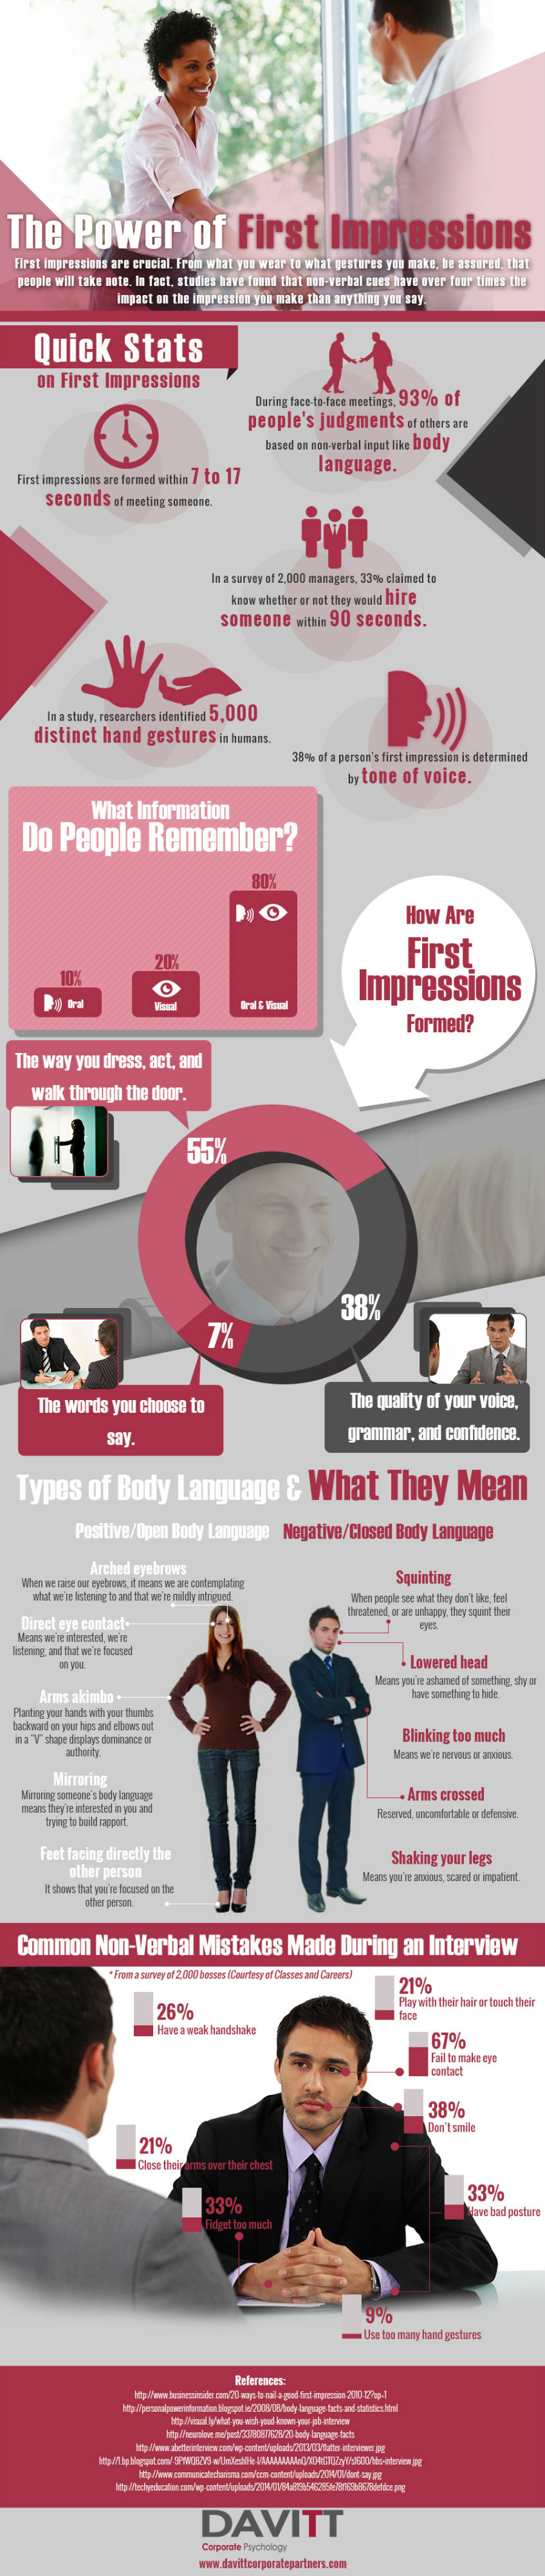 First Impressions Count [Infographic]